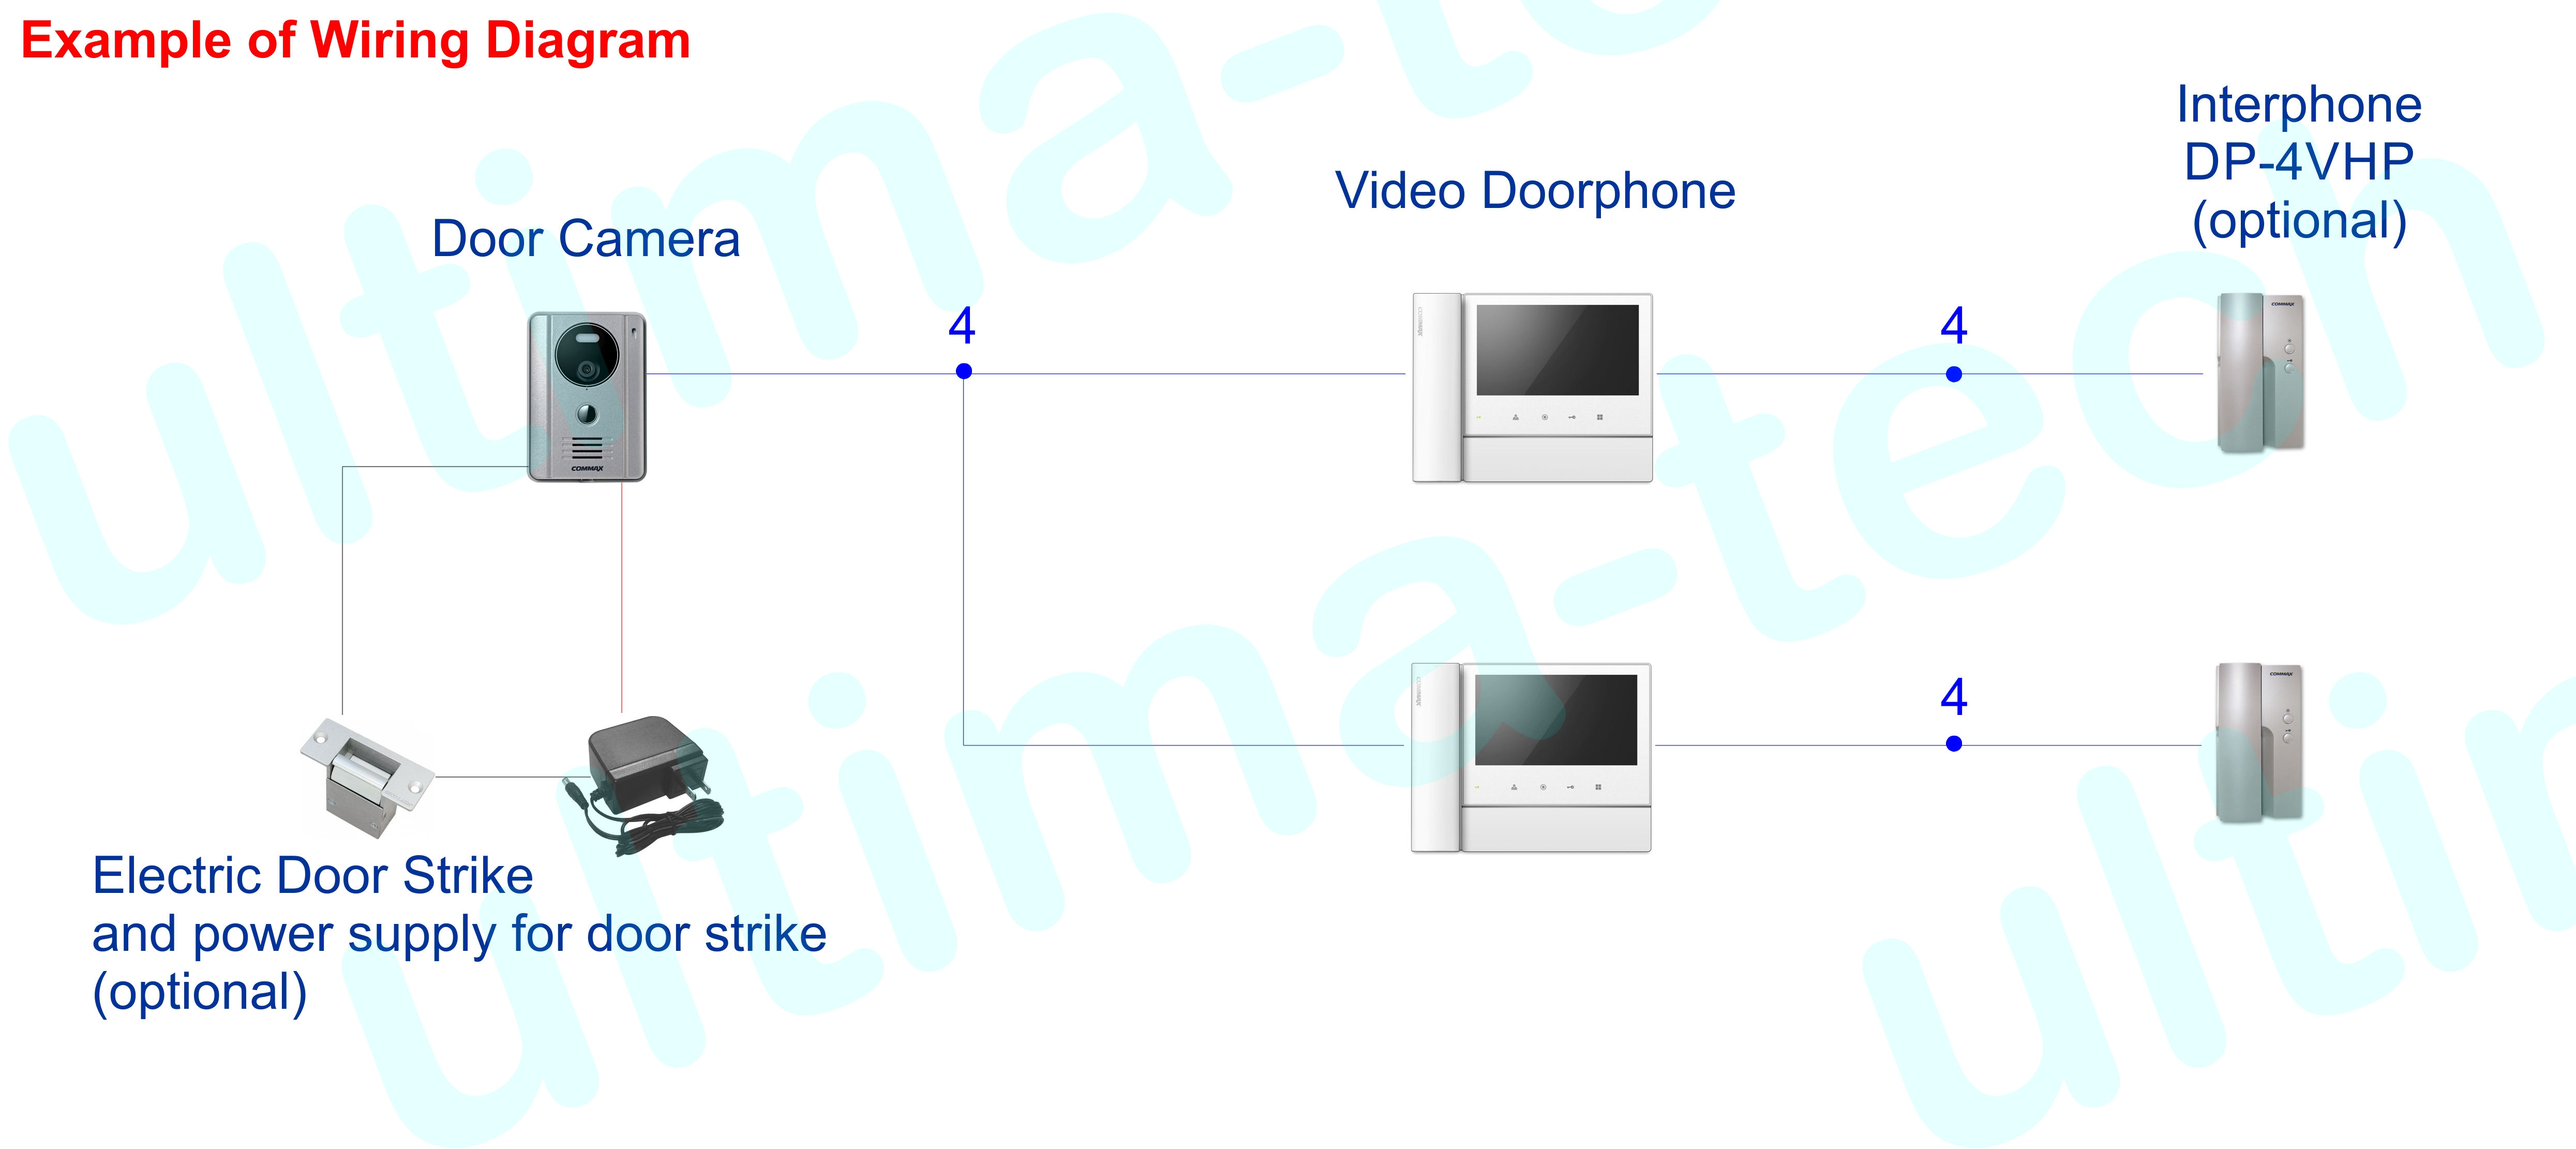 Commax 7 Video Doorphone W Microsd Slot And Door Camera Cdv 70nm Electrical Wiring Diagrams Diagram Example